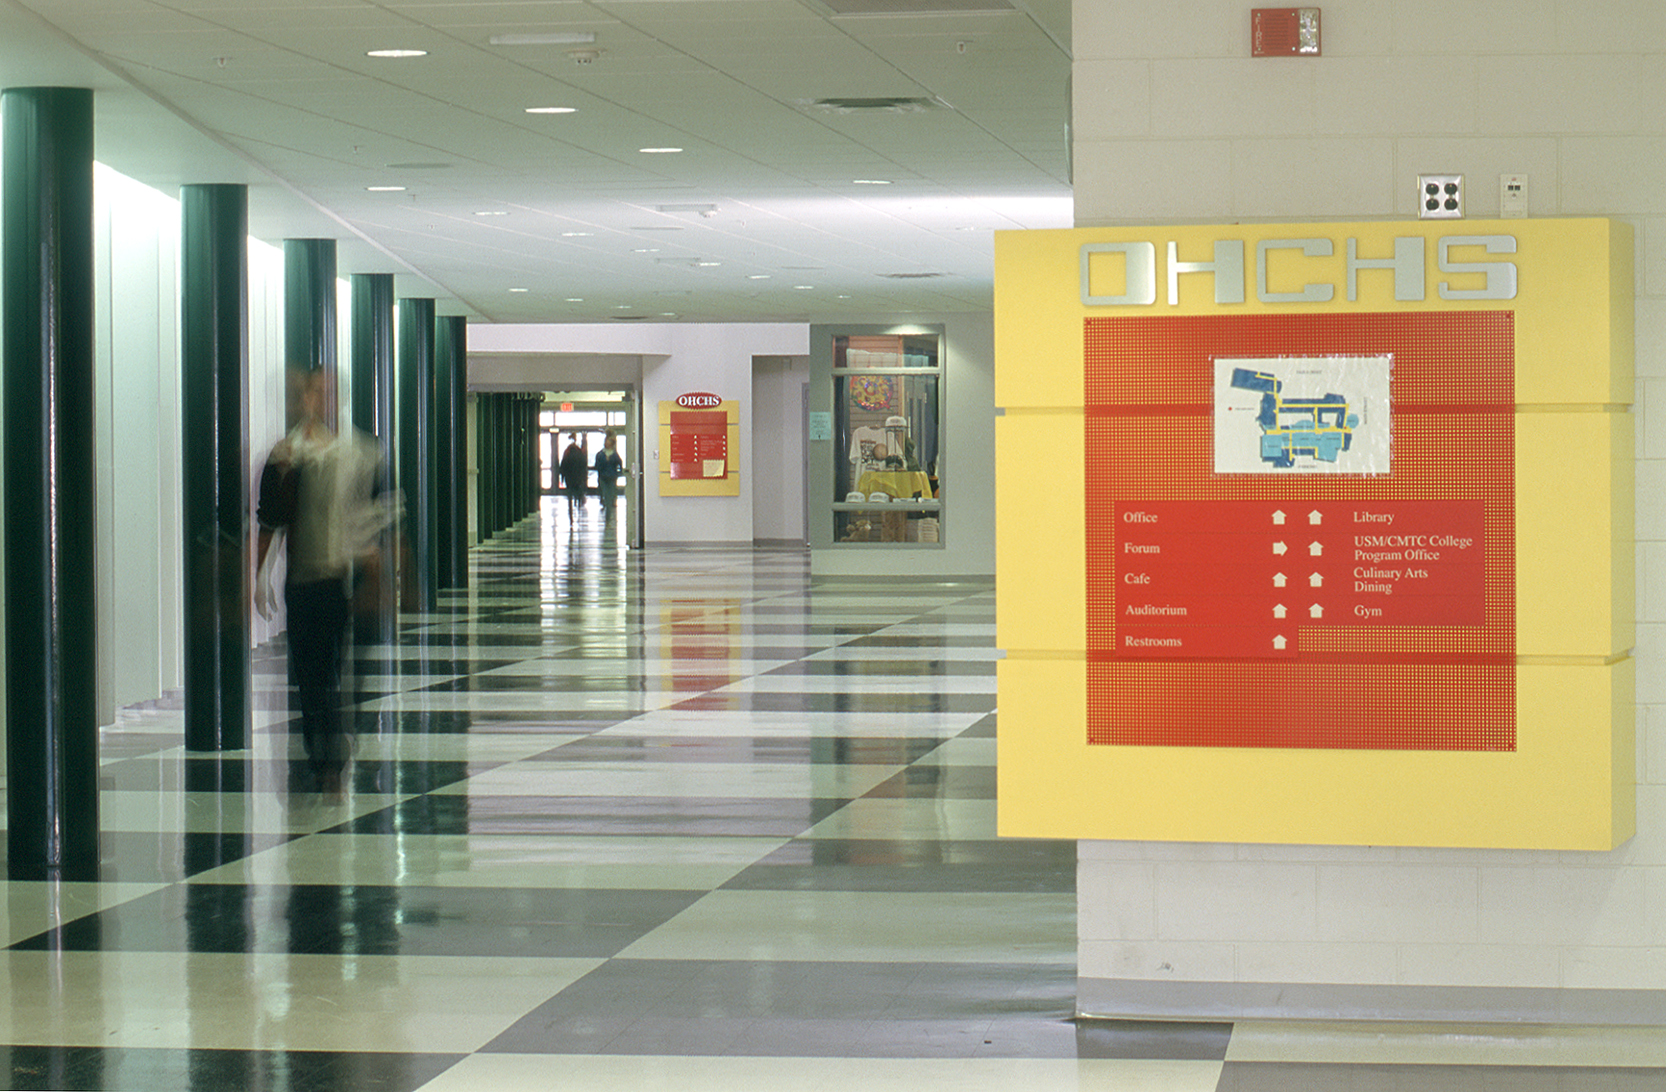 Integrated signage provides graphic wayfinding.